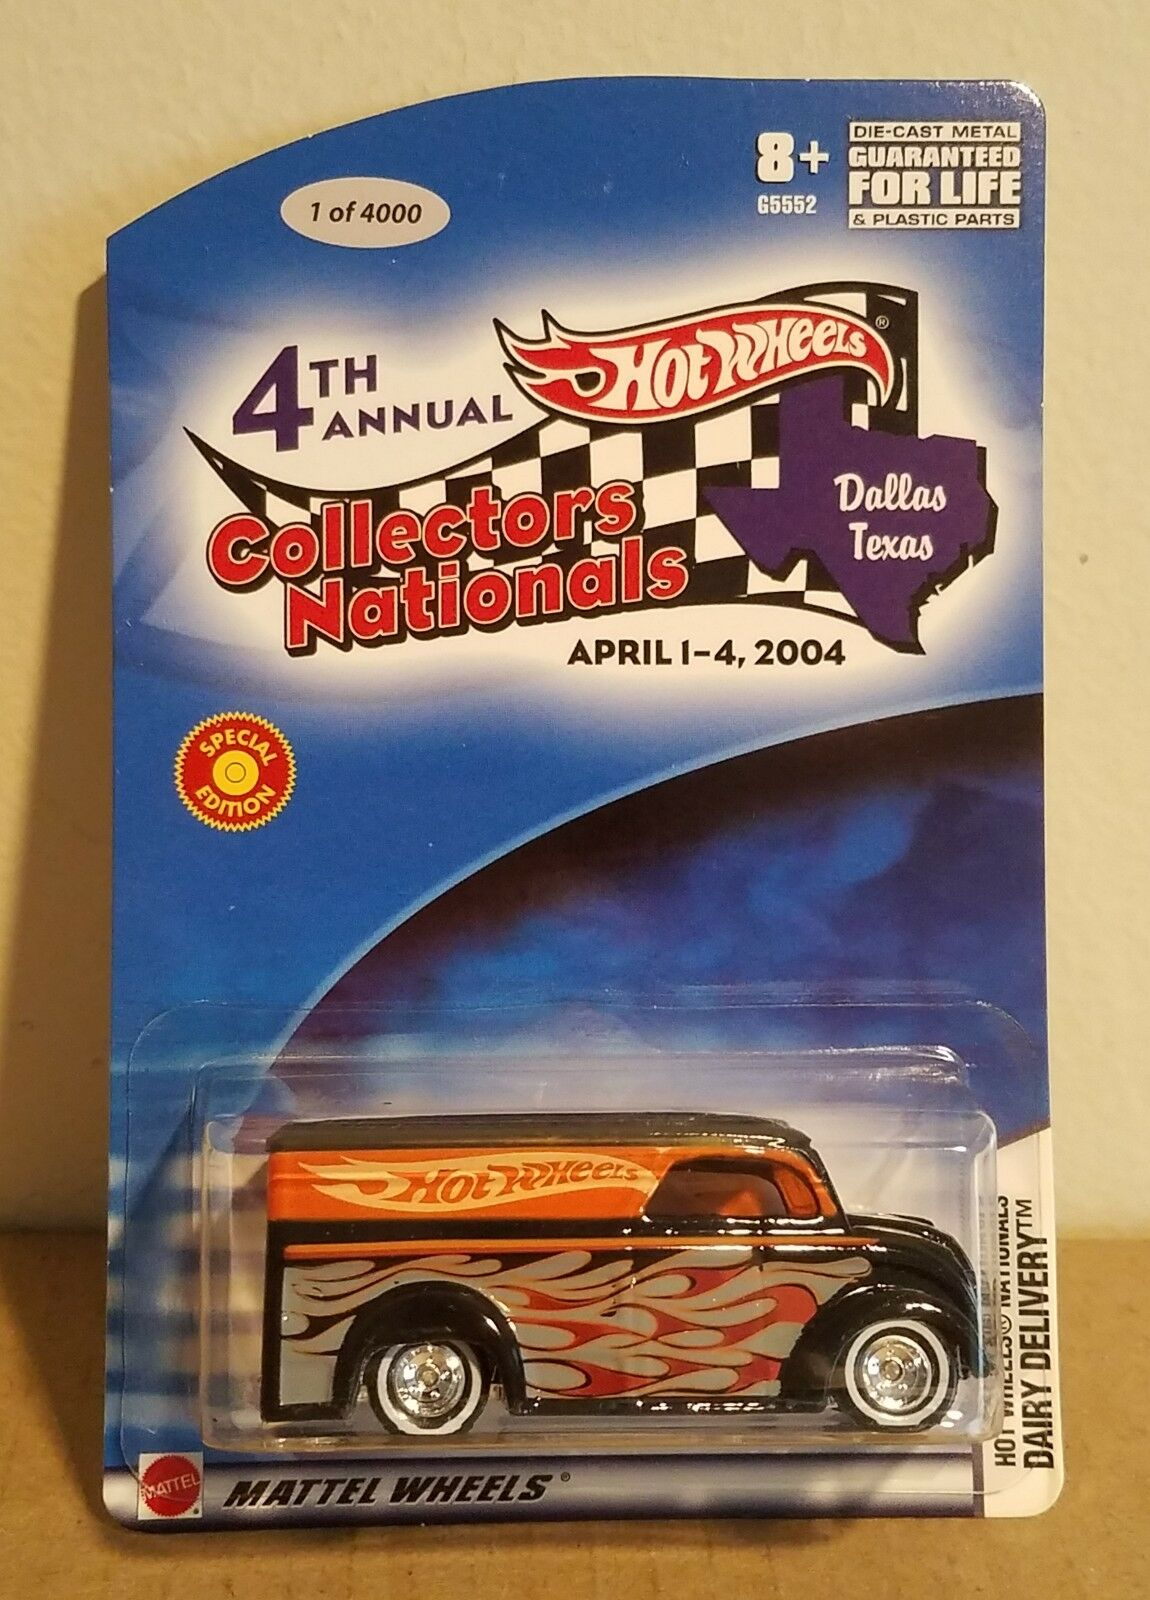 Hot Wheels Dairy Delivery 4th Collectors Nationals  Exclusive